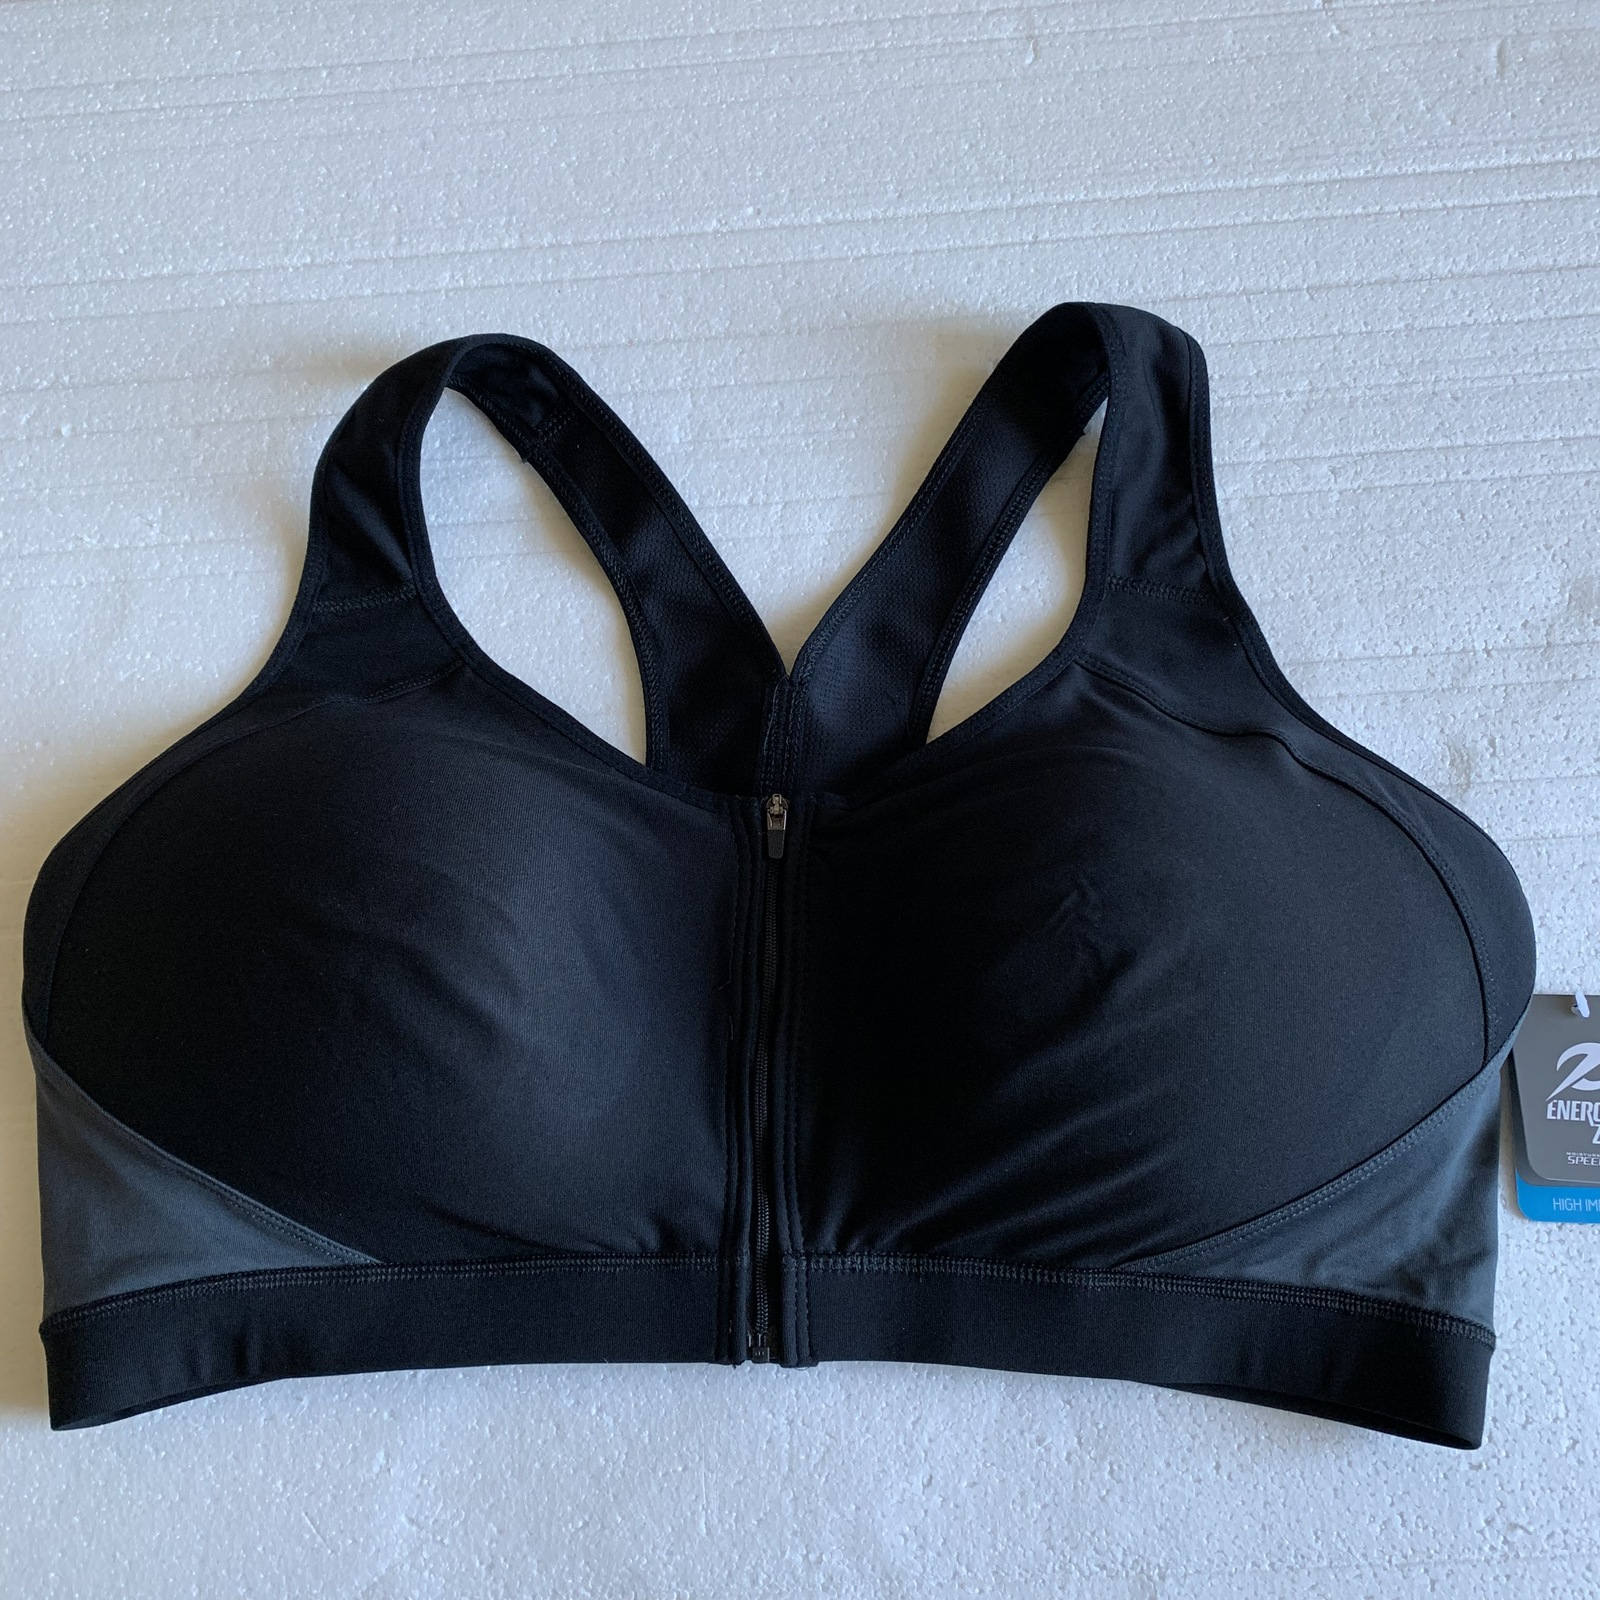 7f5baacded855 Energy Zone High Impact Sports Bra 1X 2X and 50 similar items